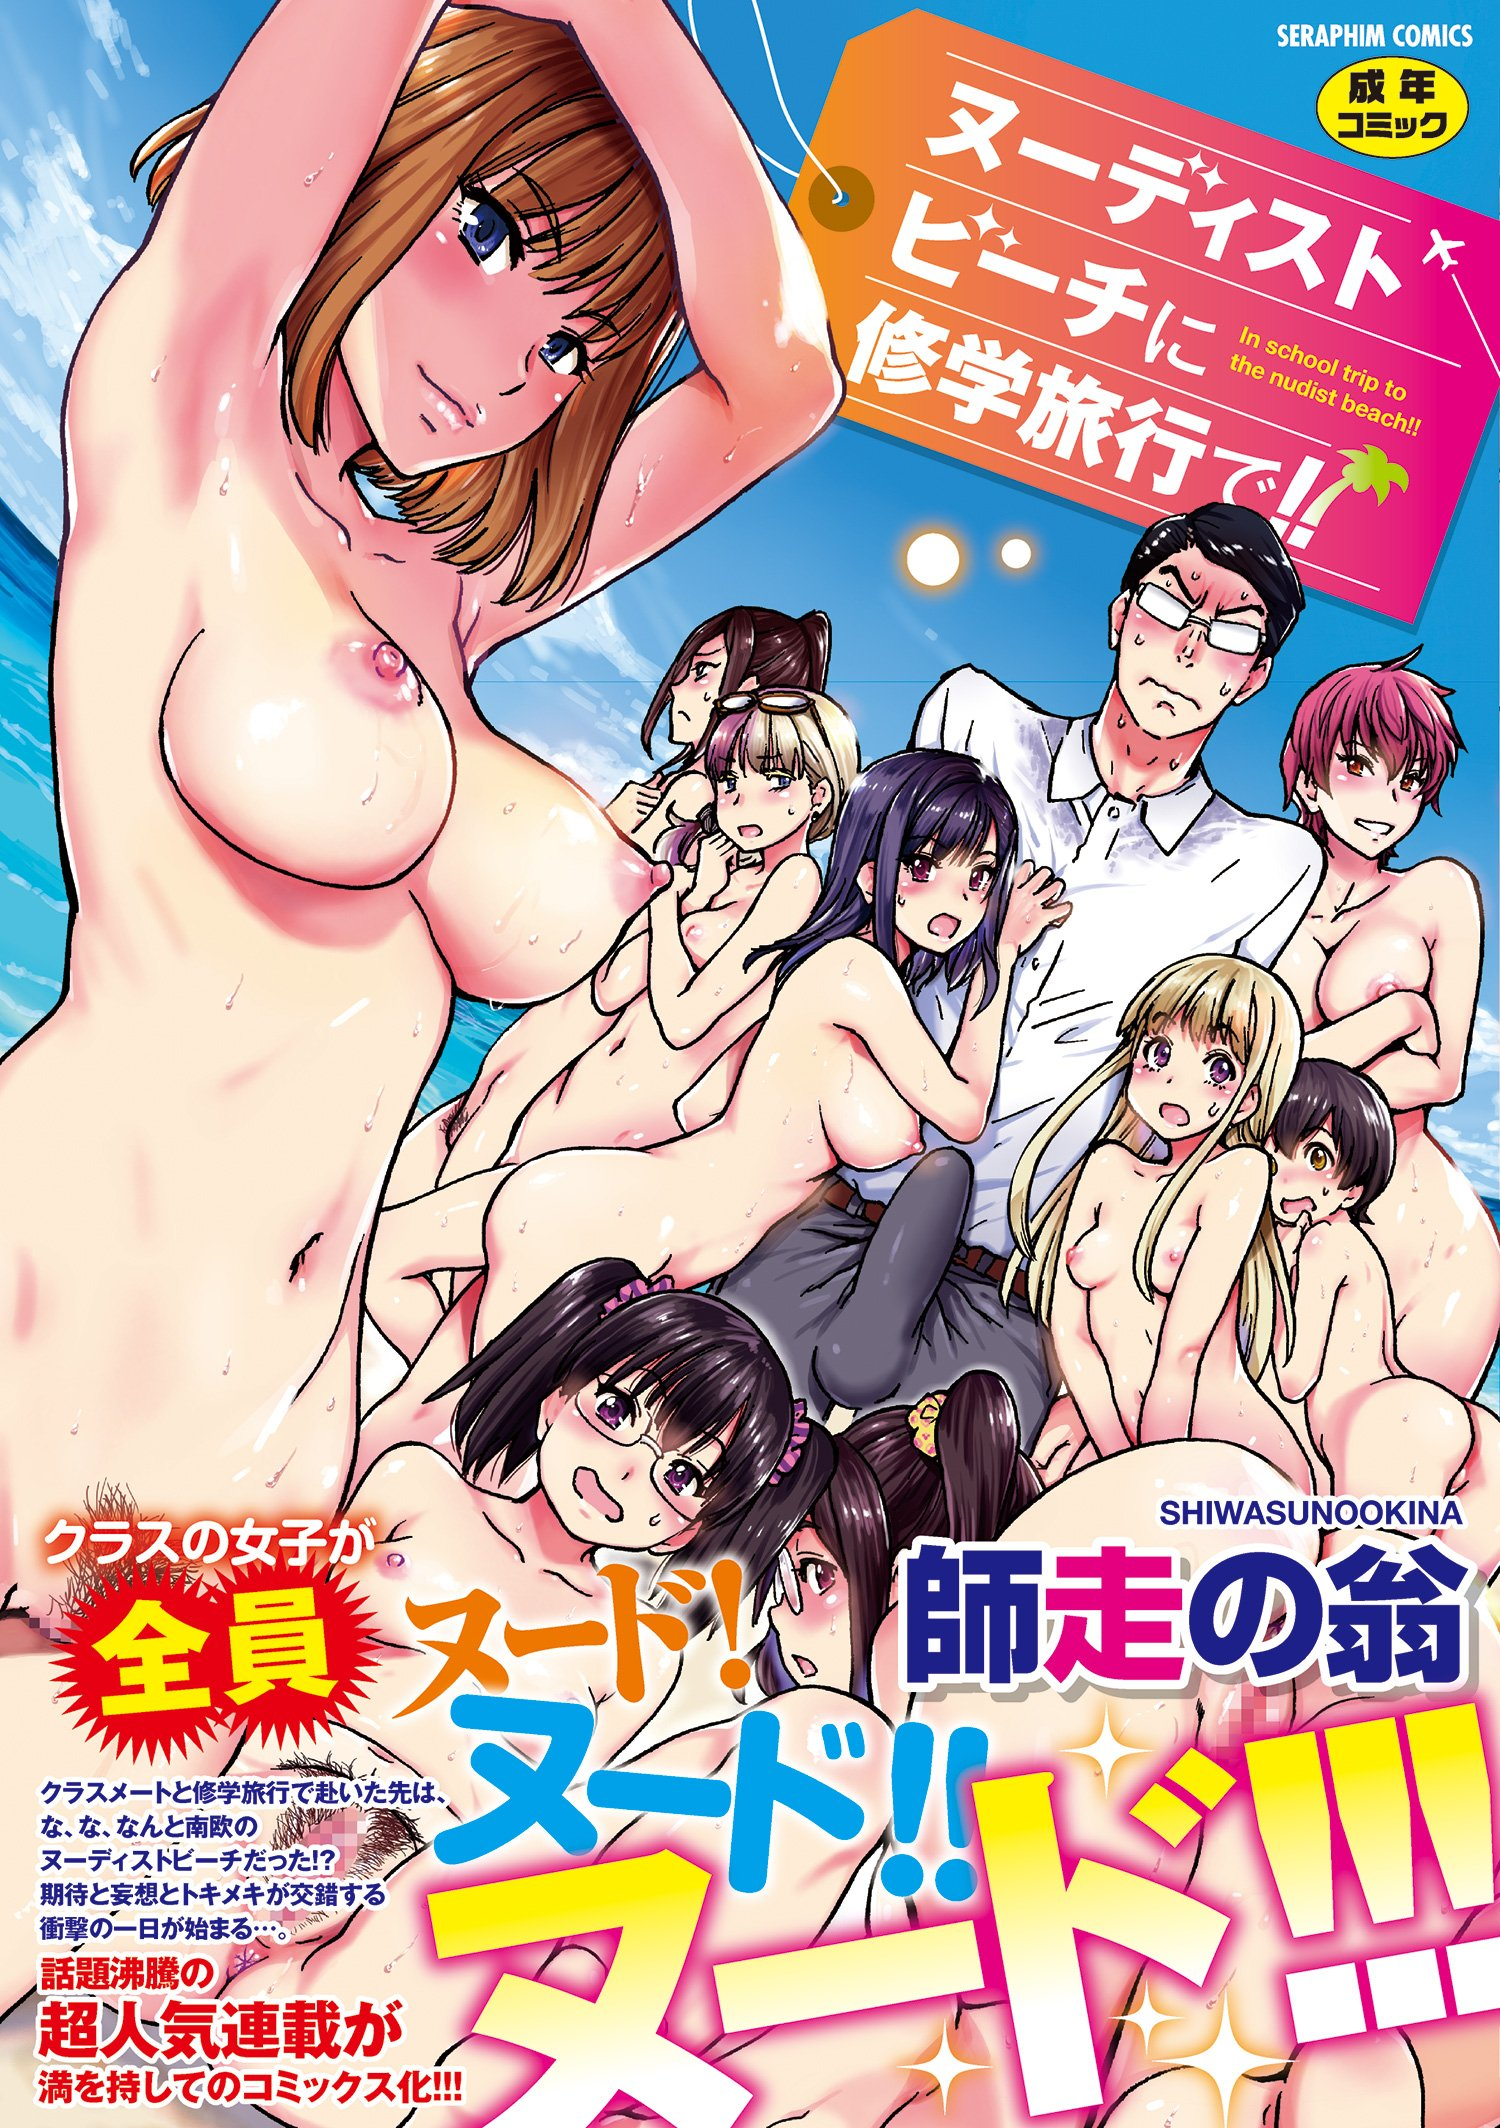 senmanga, マンガ Raw, raw manga, hentai manga,hentai anime, hentai download